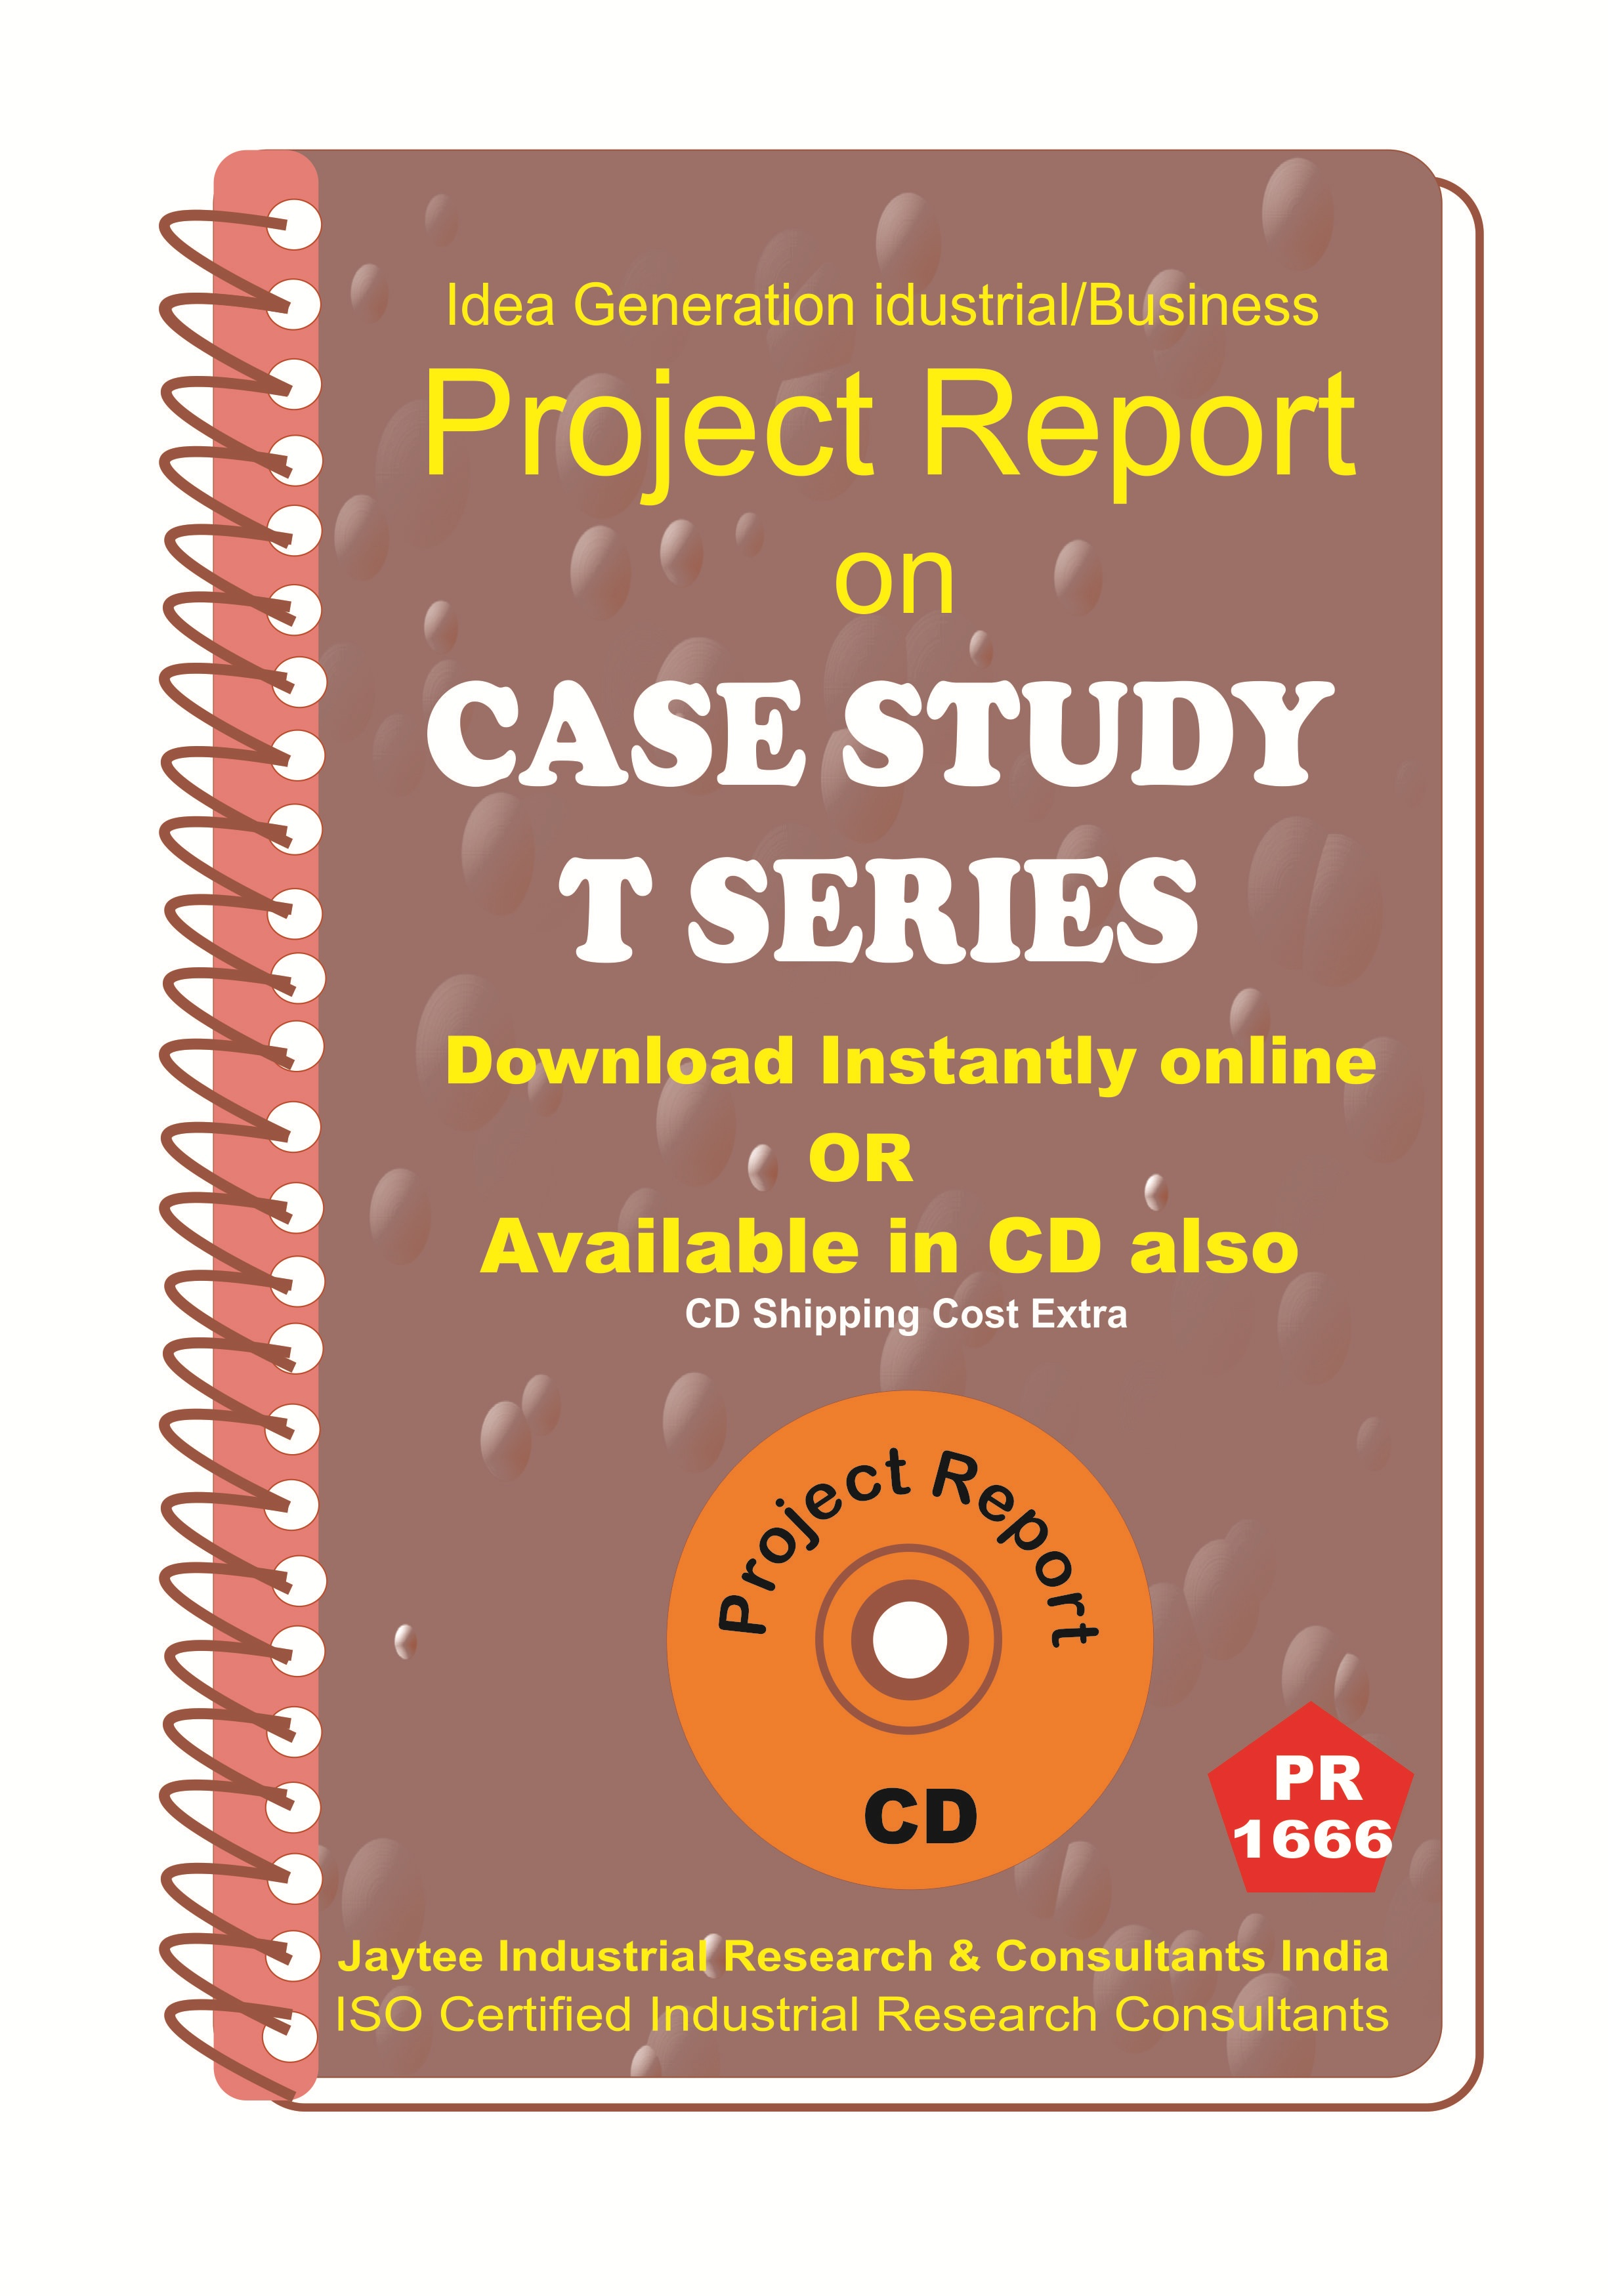 Case Study T Series Project Report eBook